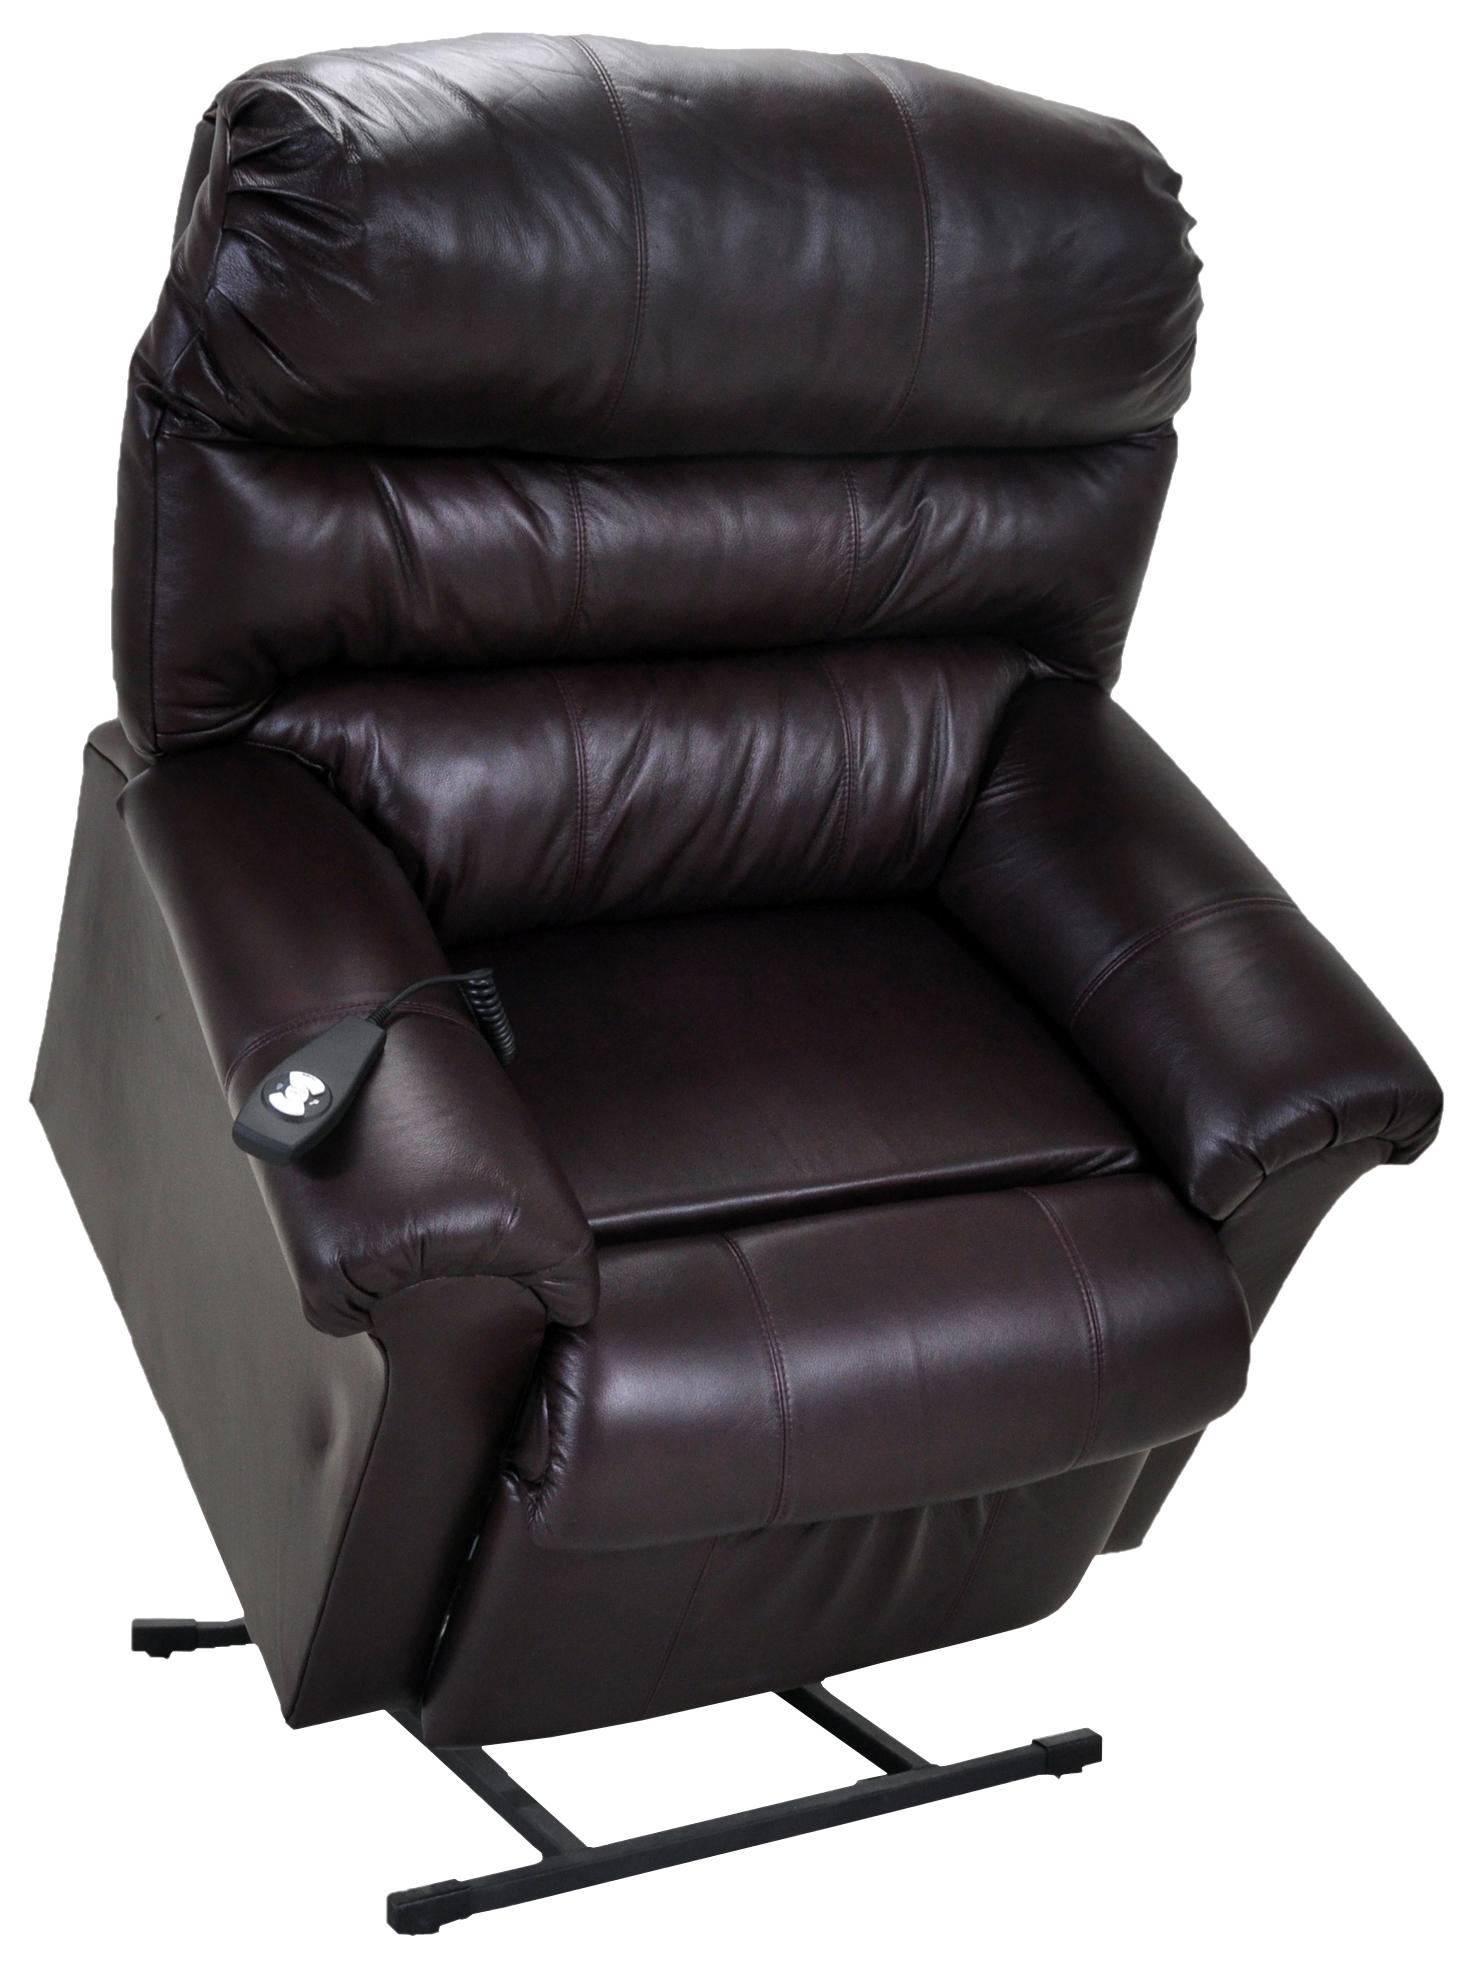 Franklin Lift and Power Recliners Chocolate Leather Lift Chair - Item Number 498 O  sc 1 st  Great American Home Store & Franklin Lift and Power Recliners Chocolate Leather Lift Chair ... islam-shia.org